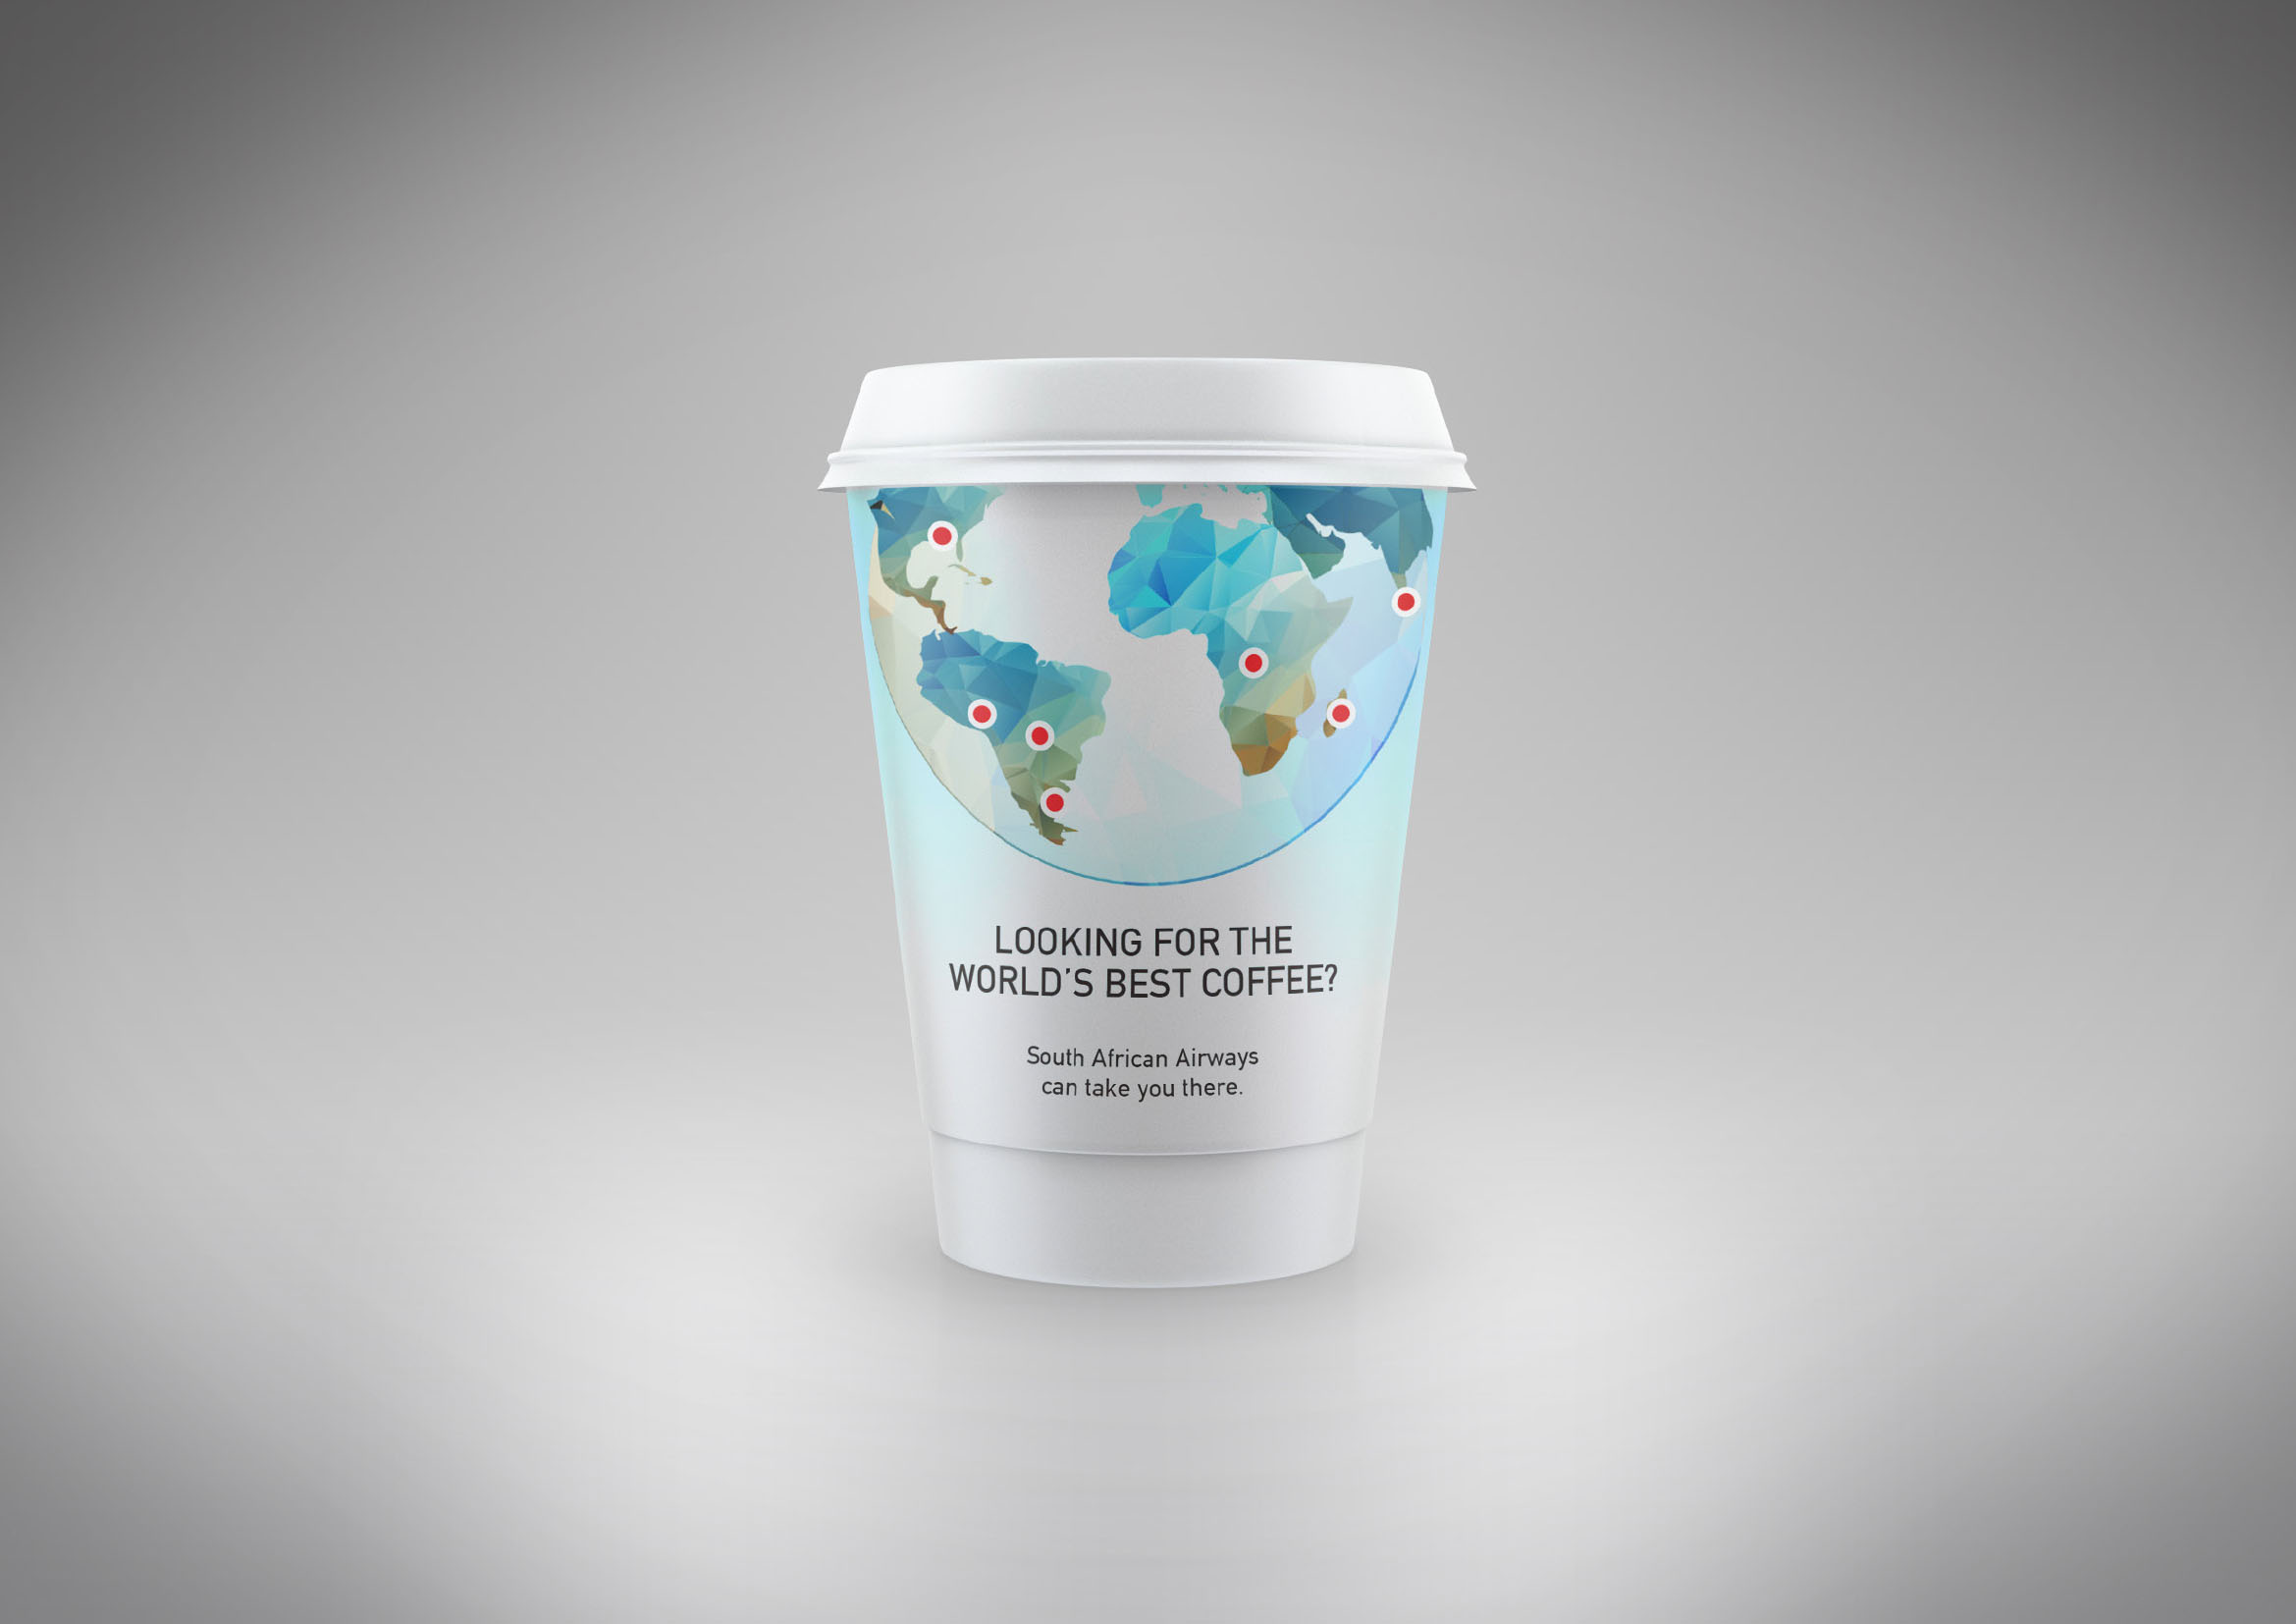 SAA CUP DESIGNS GLOBECREATIVE-2.jpg